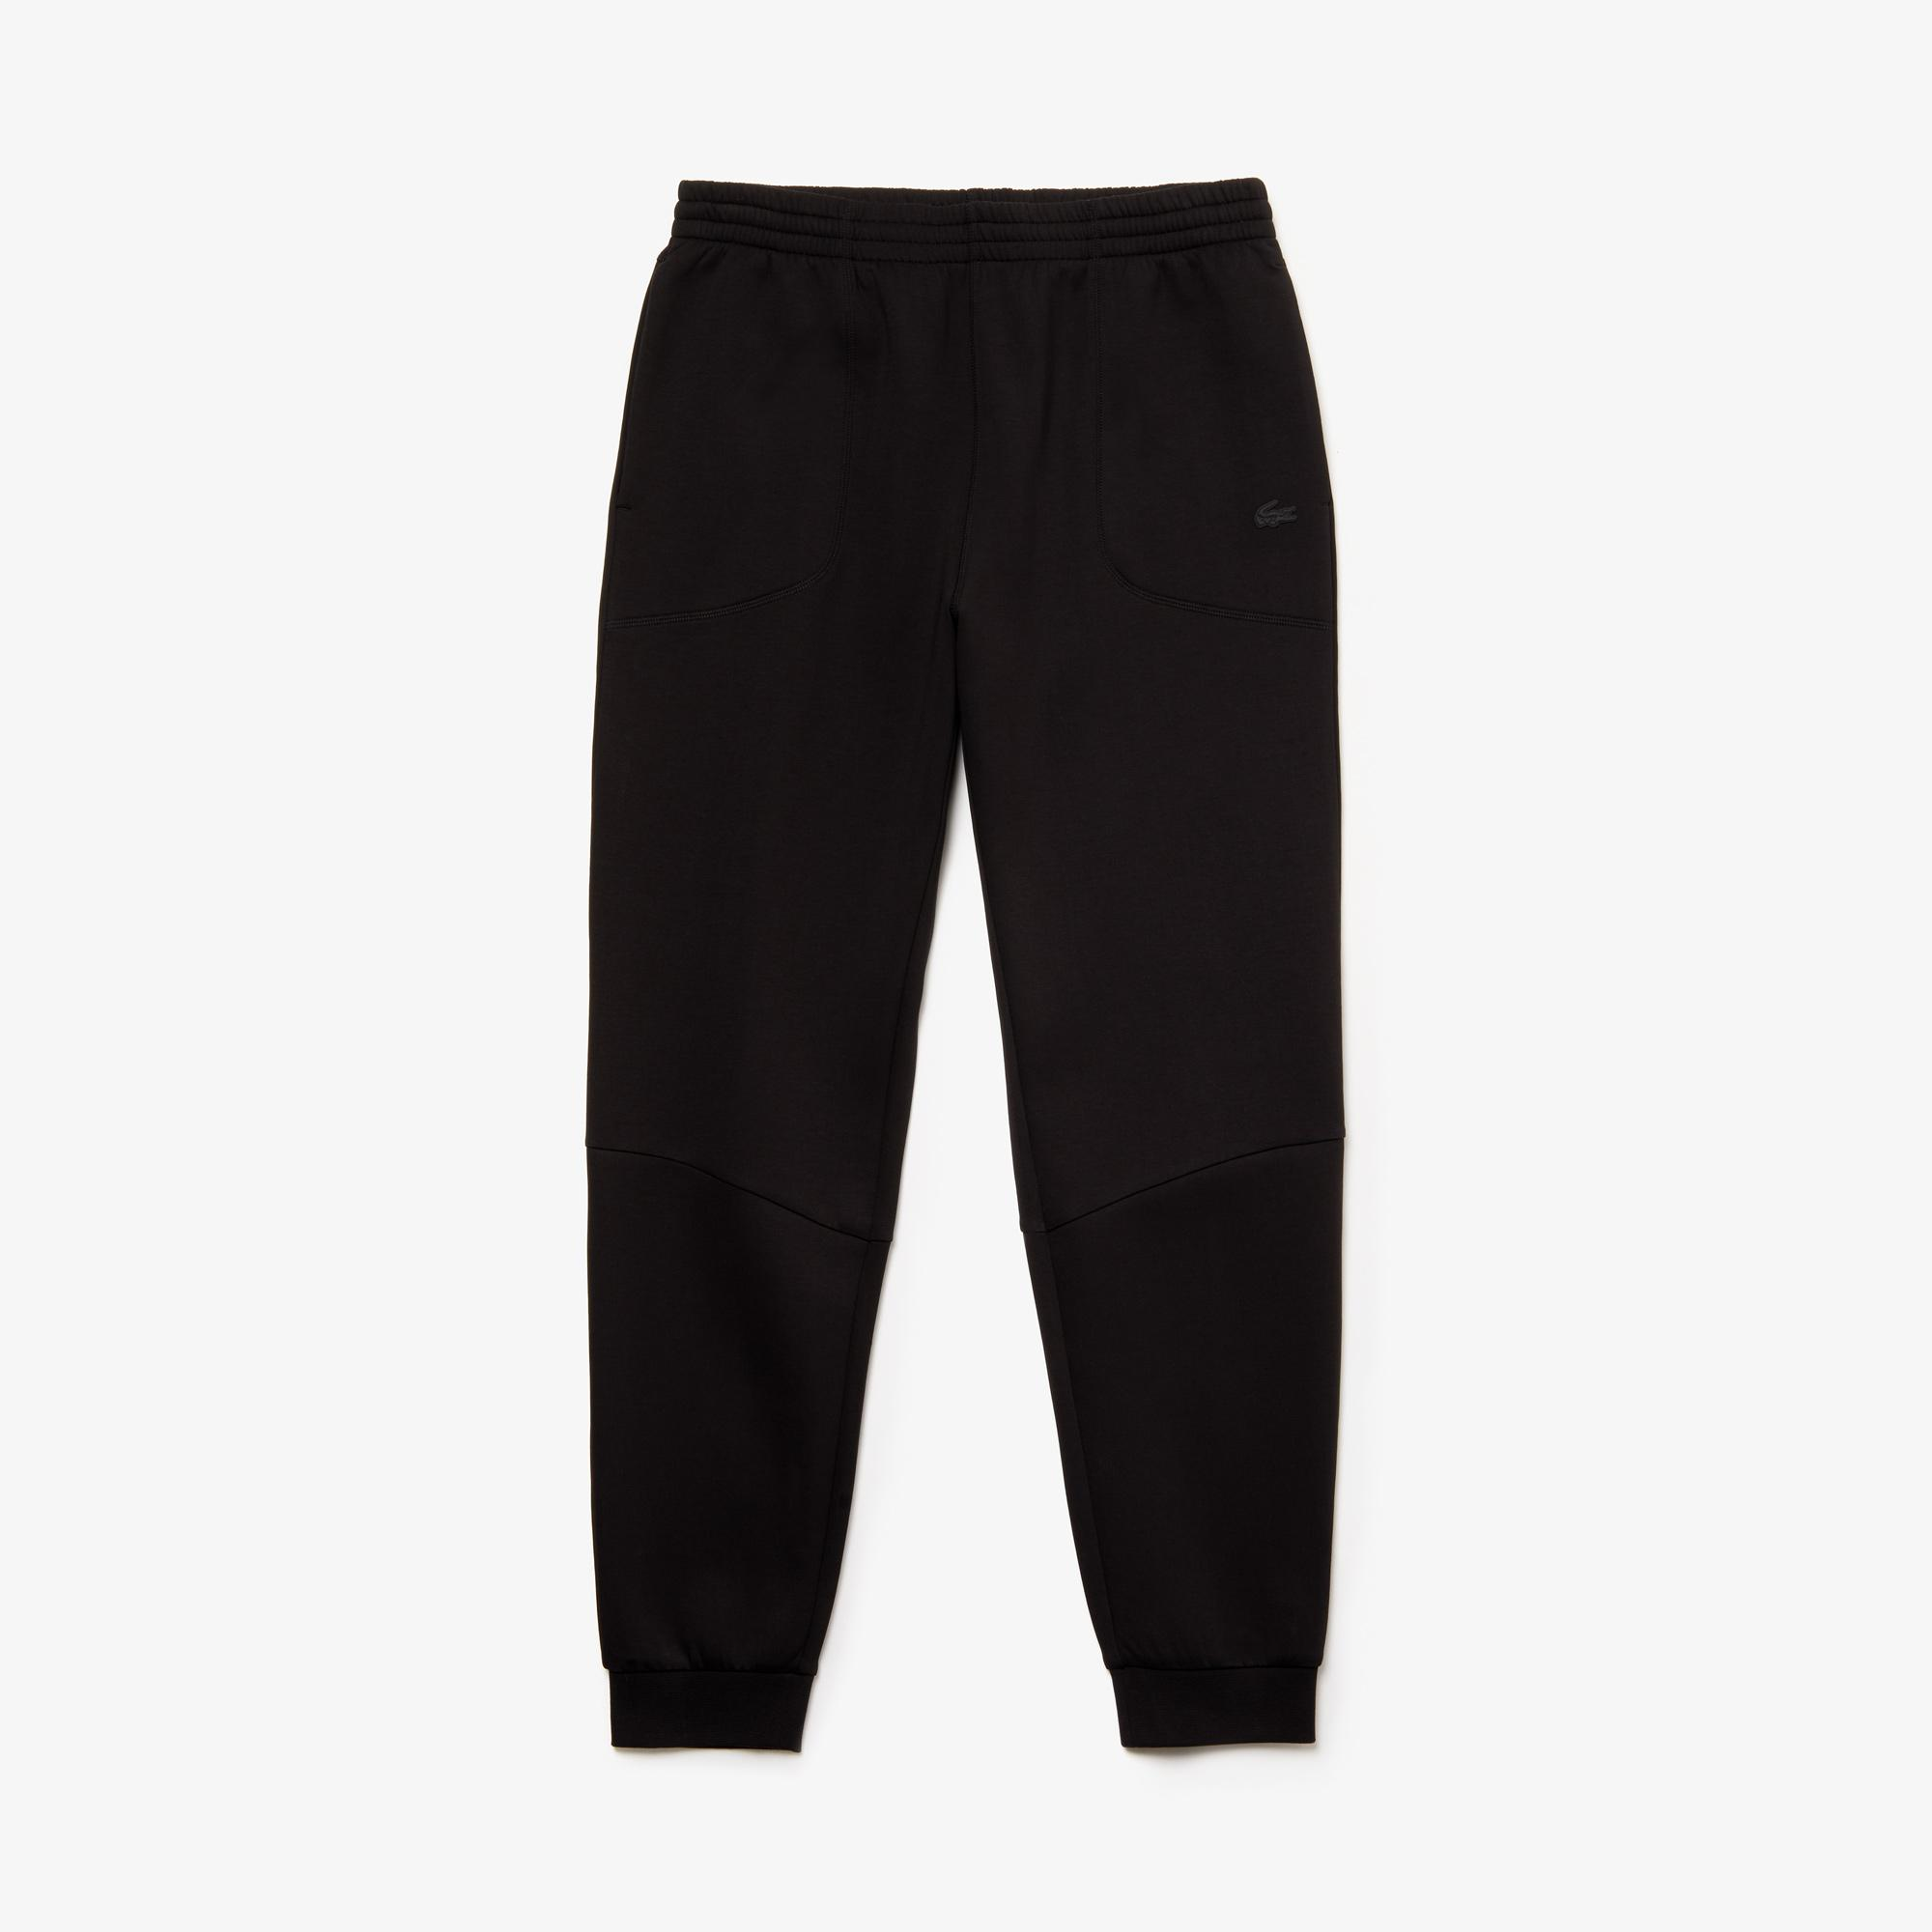 Lacoste Men's Tracksuit Pants